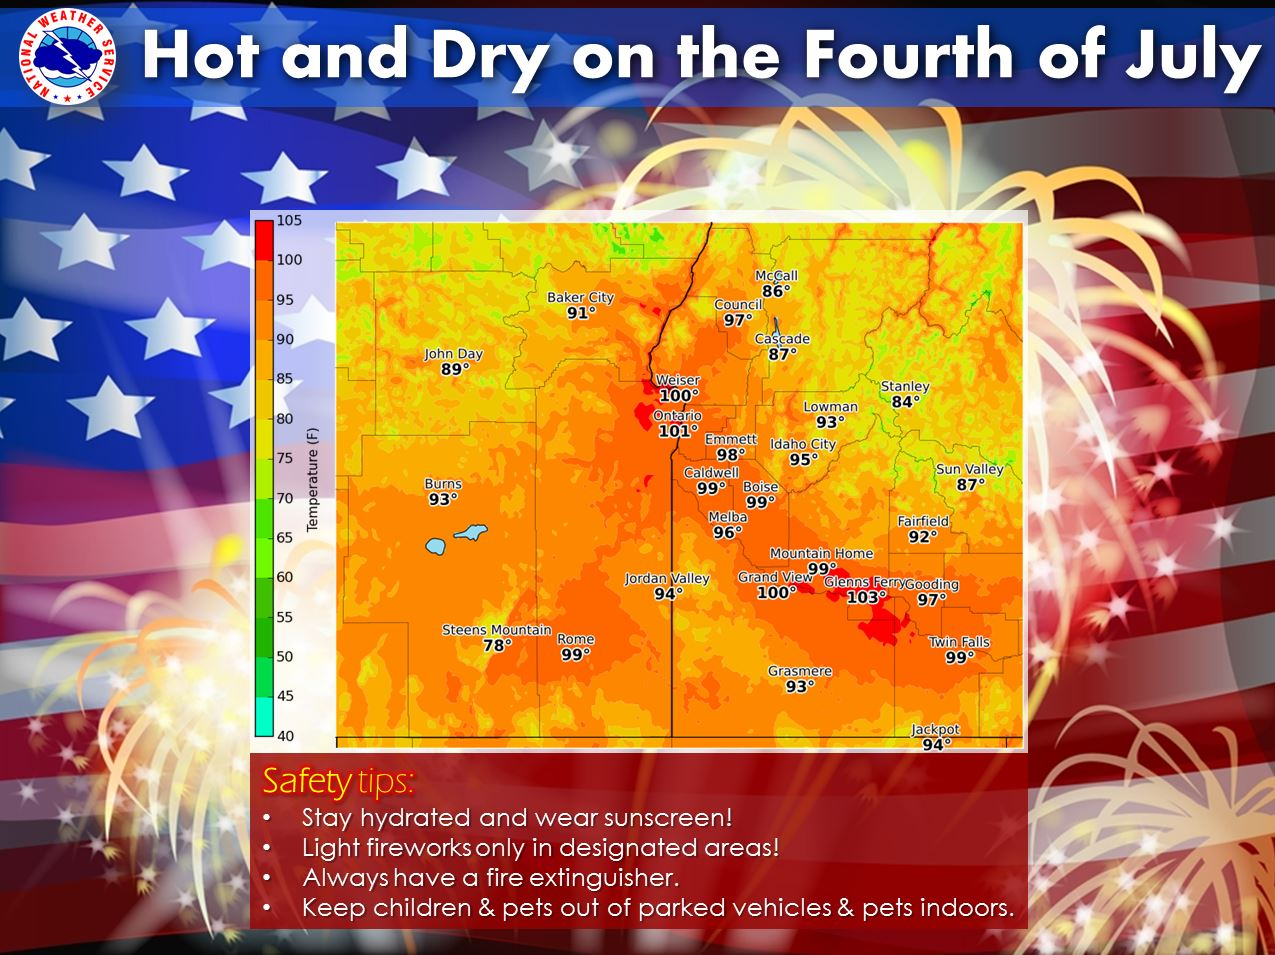 Forecast High Temperatures for the Fourth of July